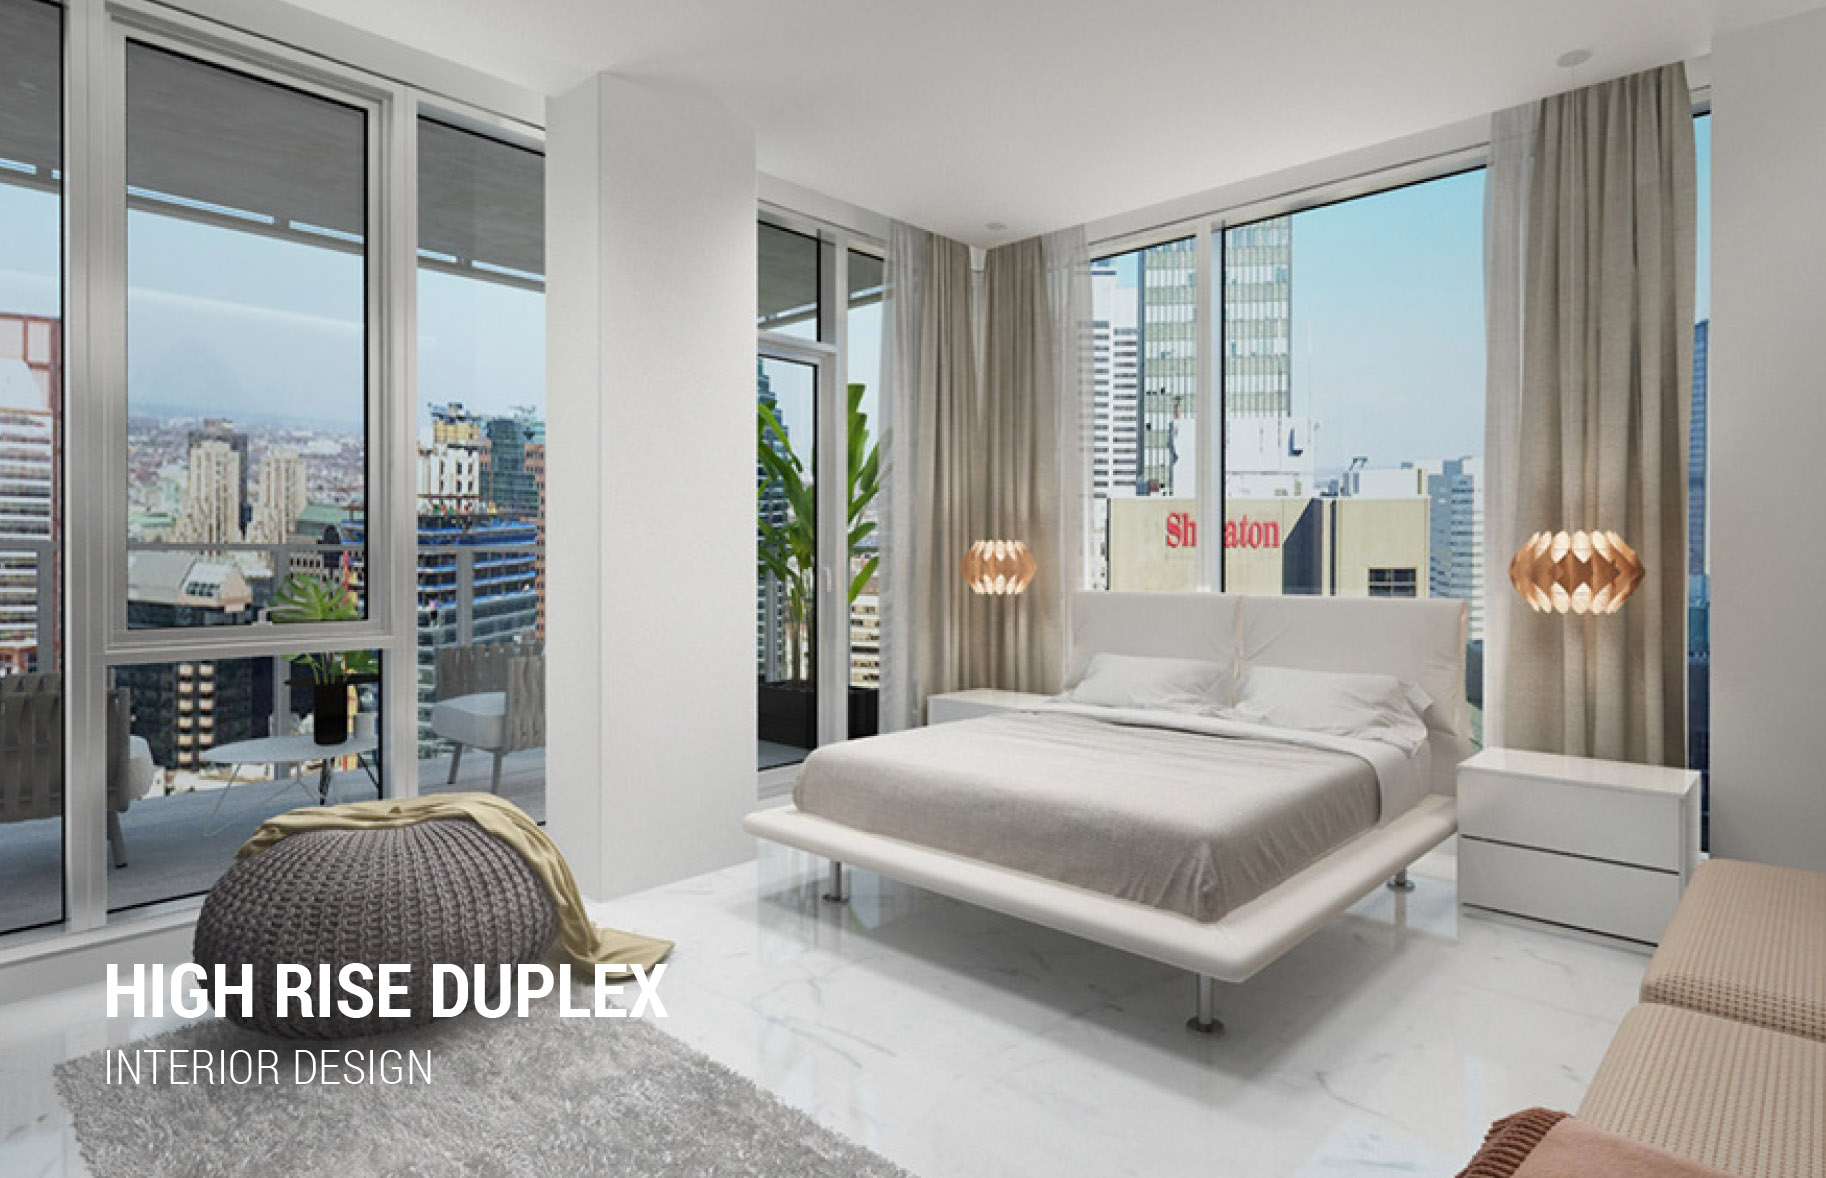 Schema Dimitra Chrona designer, creative director, architectural, 3D visualization, 3D Rendering, branding websites, digital, graphic design, interior design, real estate, luxury property, staging, museum, virtual, art, brochures, exhibitions, logotype, logo, Canada Quebec Montreal Athens Greece schema design high rise duplex large.jpg